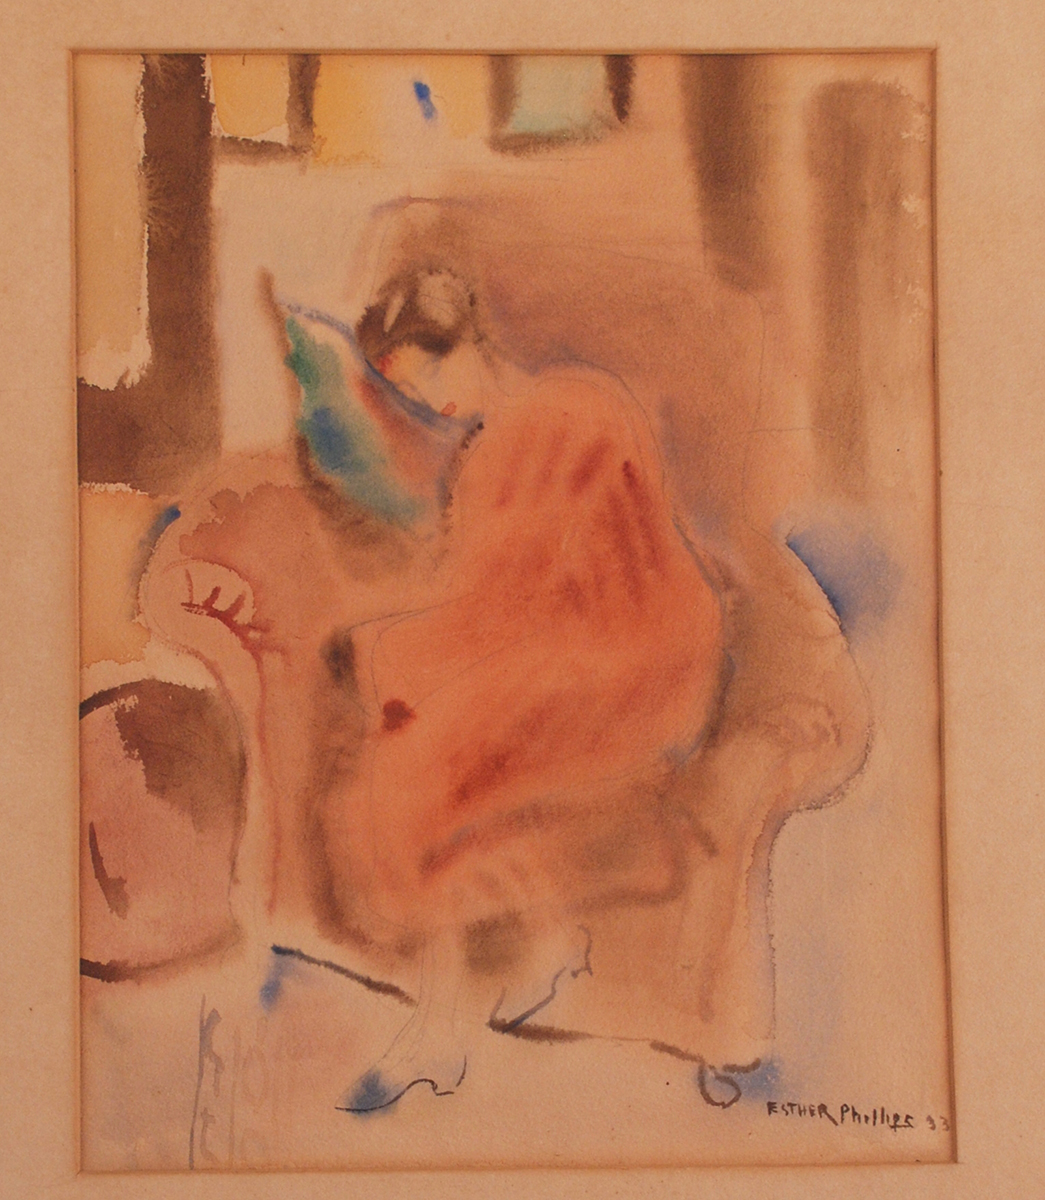 Esther Phillips, woman sleeping in a chair, watercolor on paper, 1933. Heinz History Center museum collection. Gift of the Estate of Sibyl Barsky Grucci.